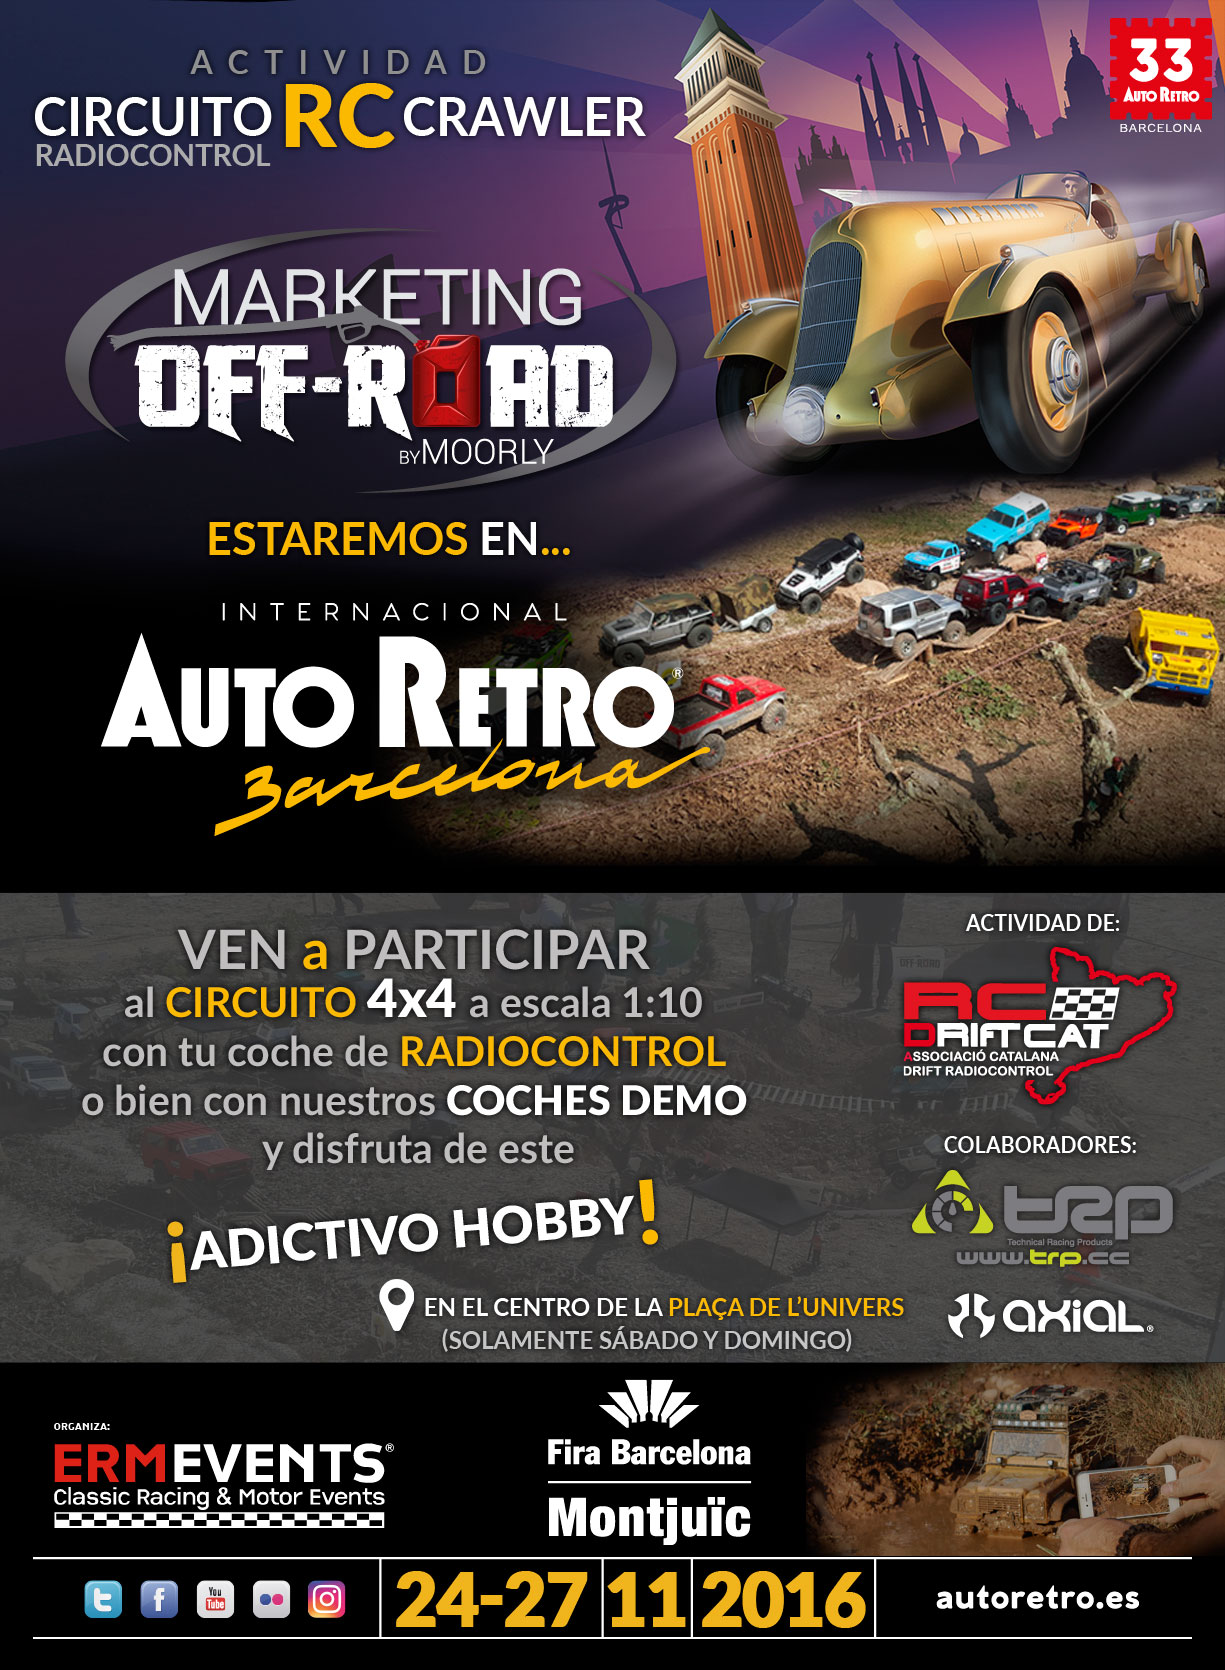 Circuito Crawler Autoretro Barcelona - Marketing Offroad